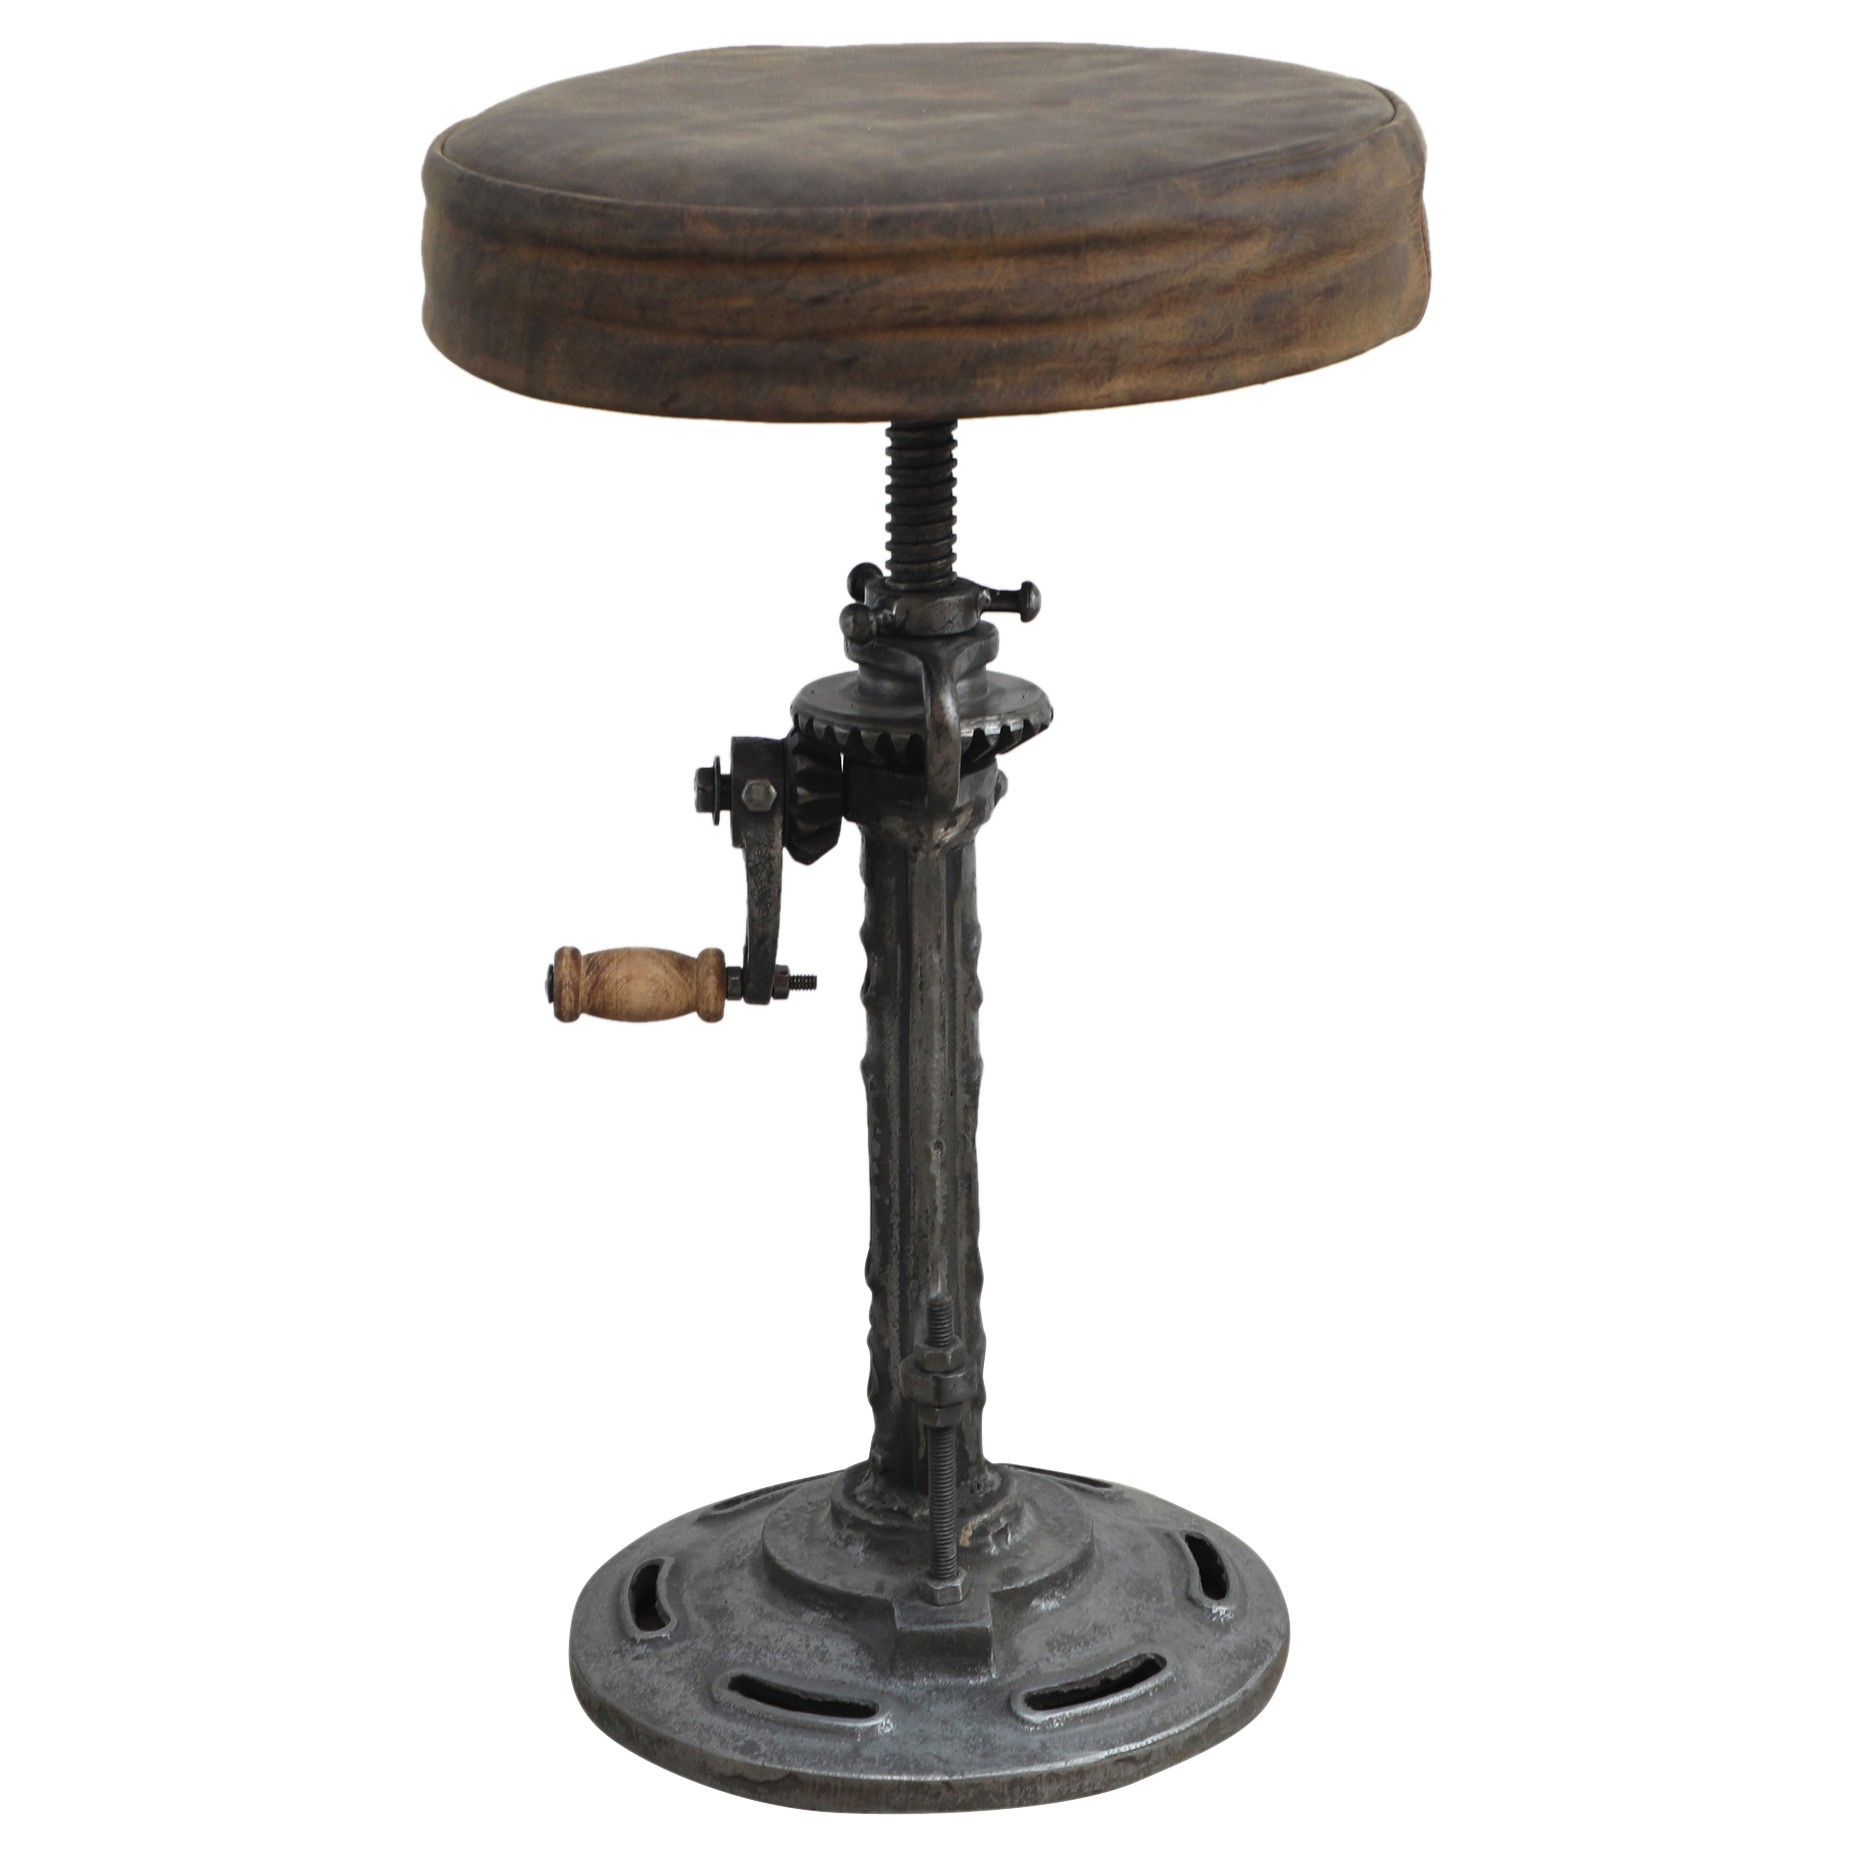 Blackburn Industrial Iron Adjustable Windup Counter / Bar Stool